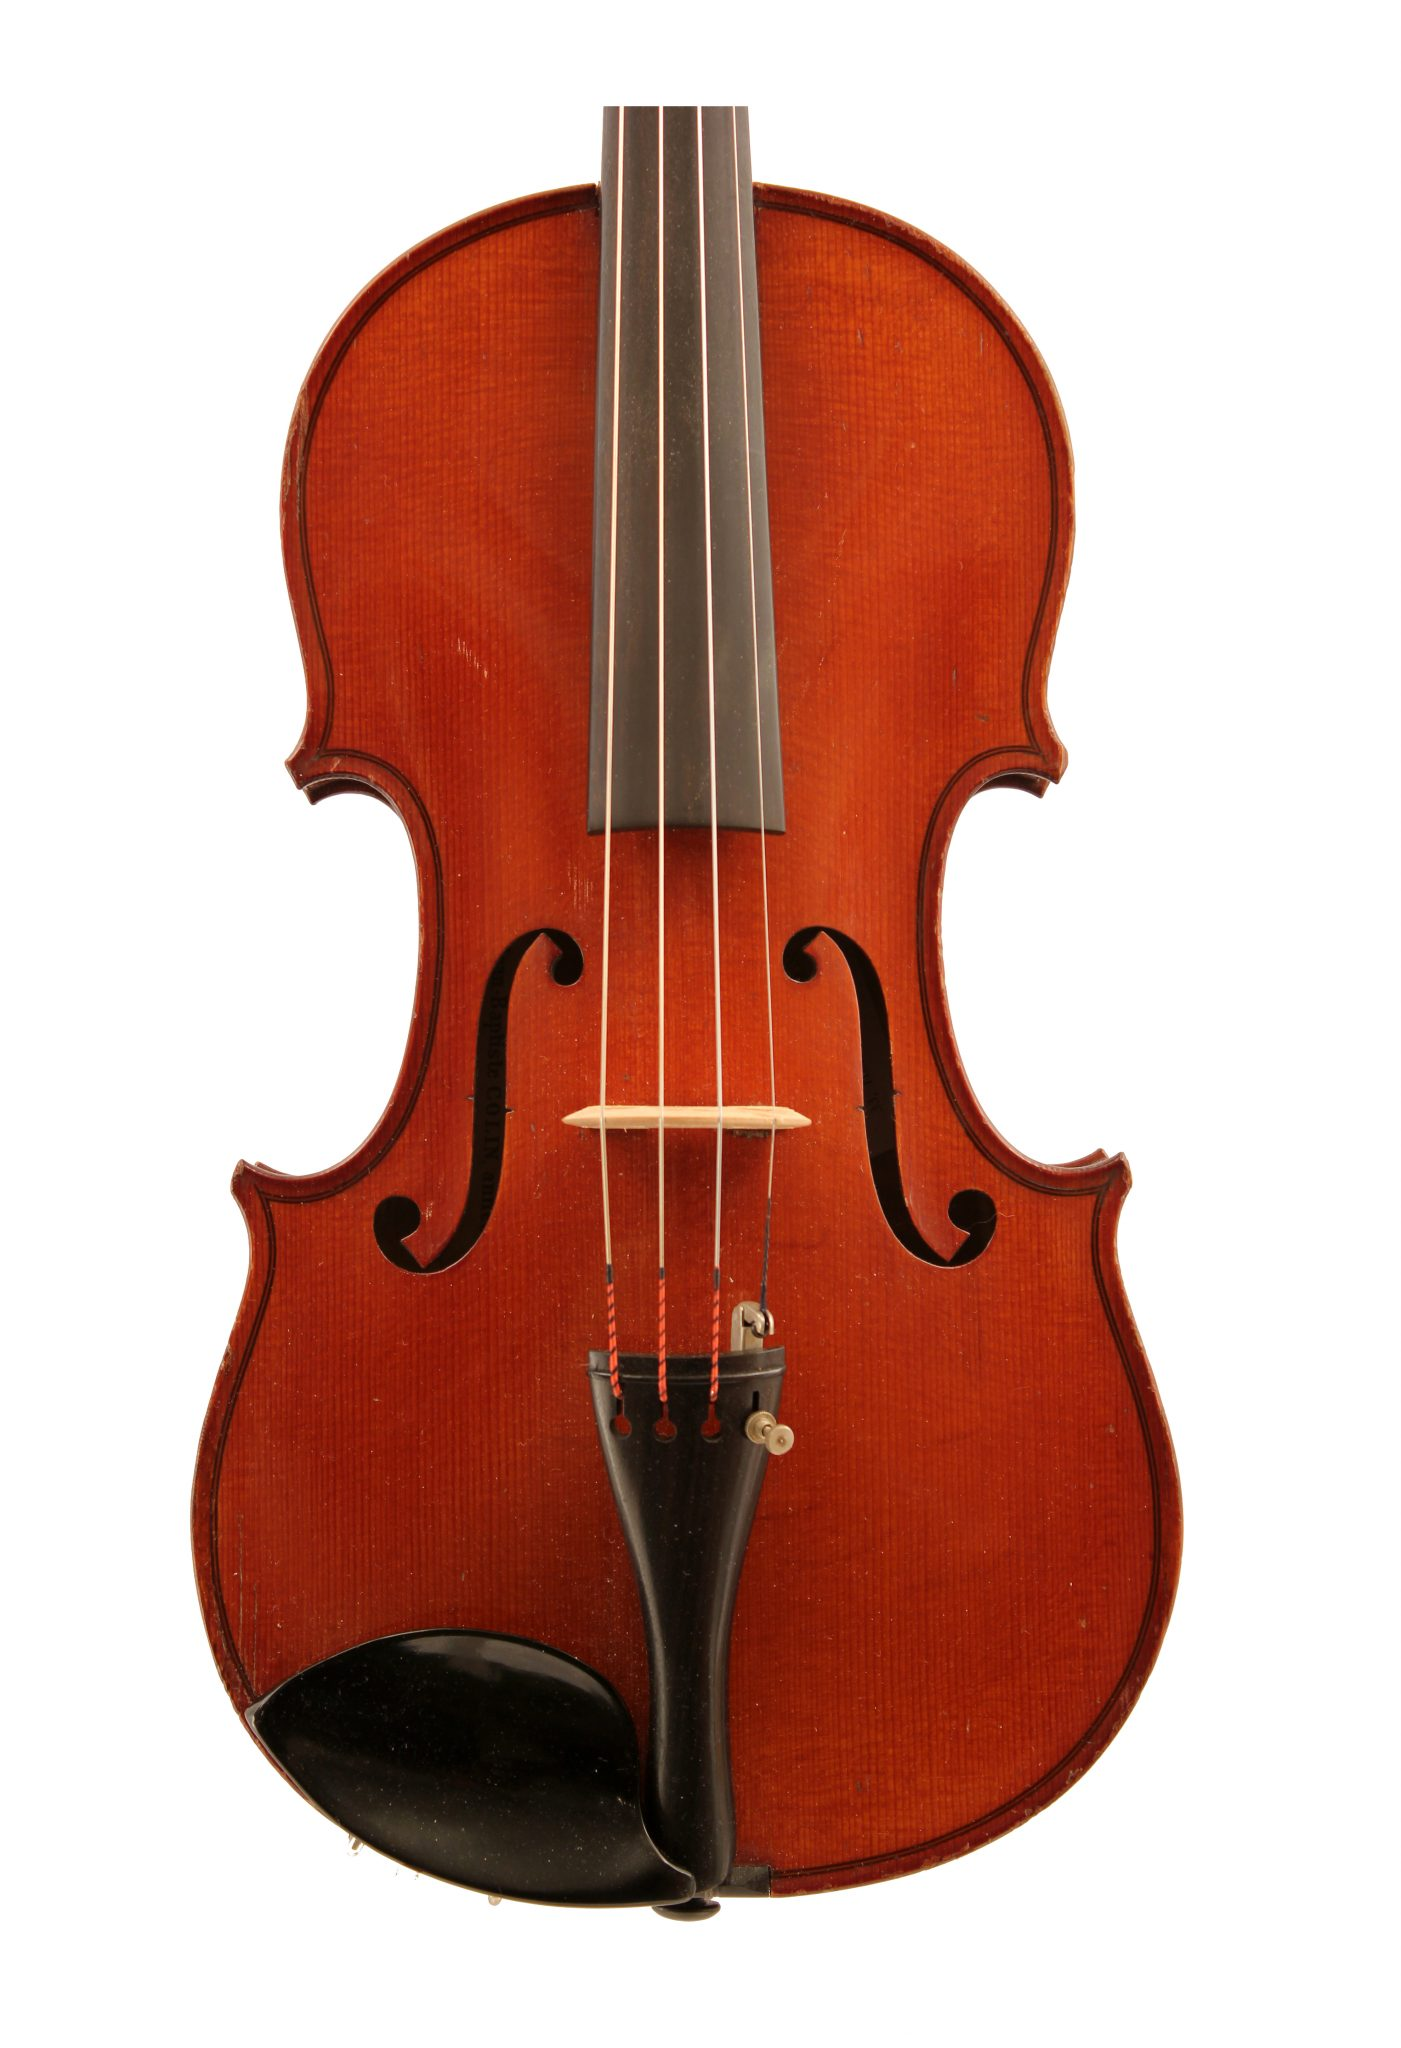 Violin by J B Colin Mirecourt 1906 for sale at Bridgewood and Neitzert London